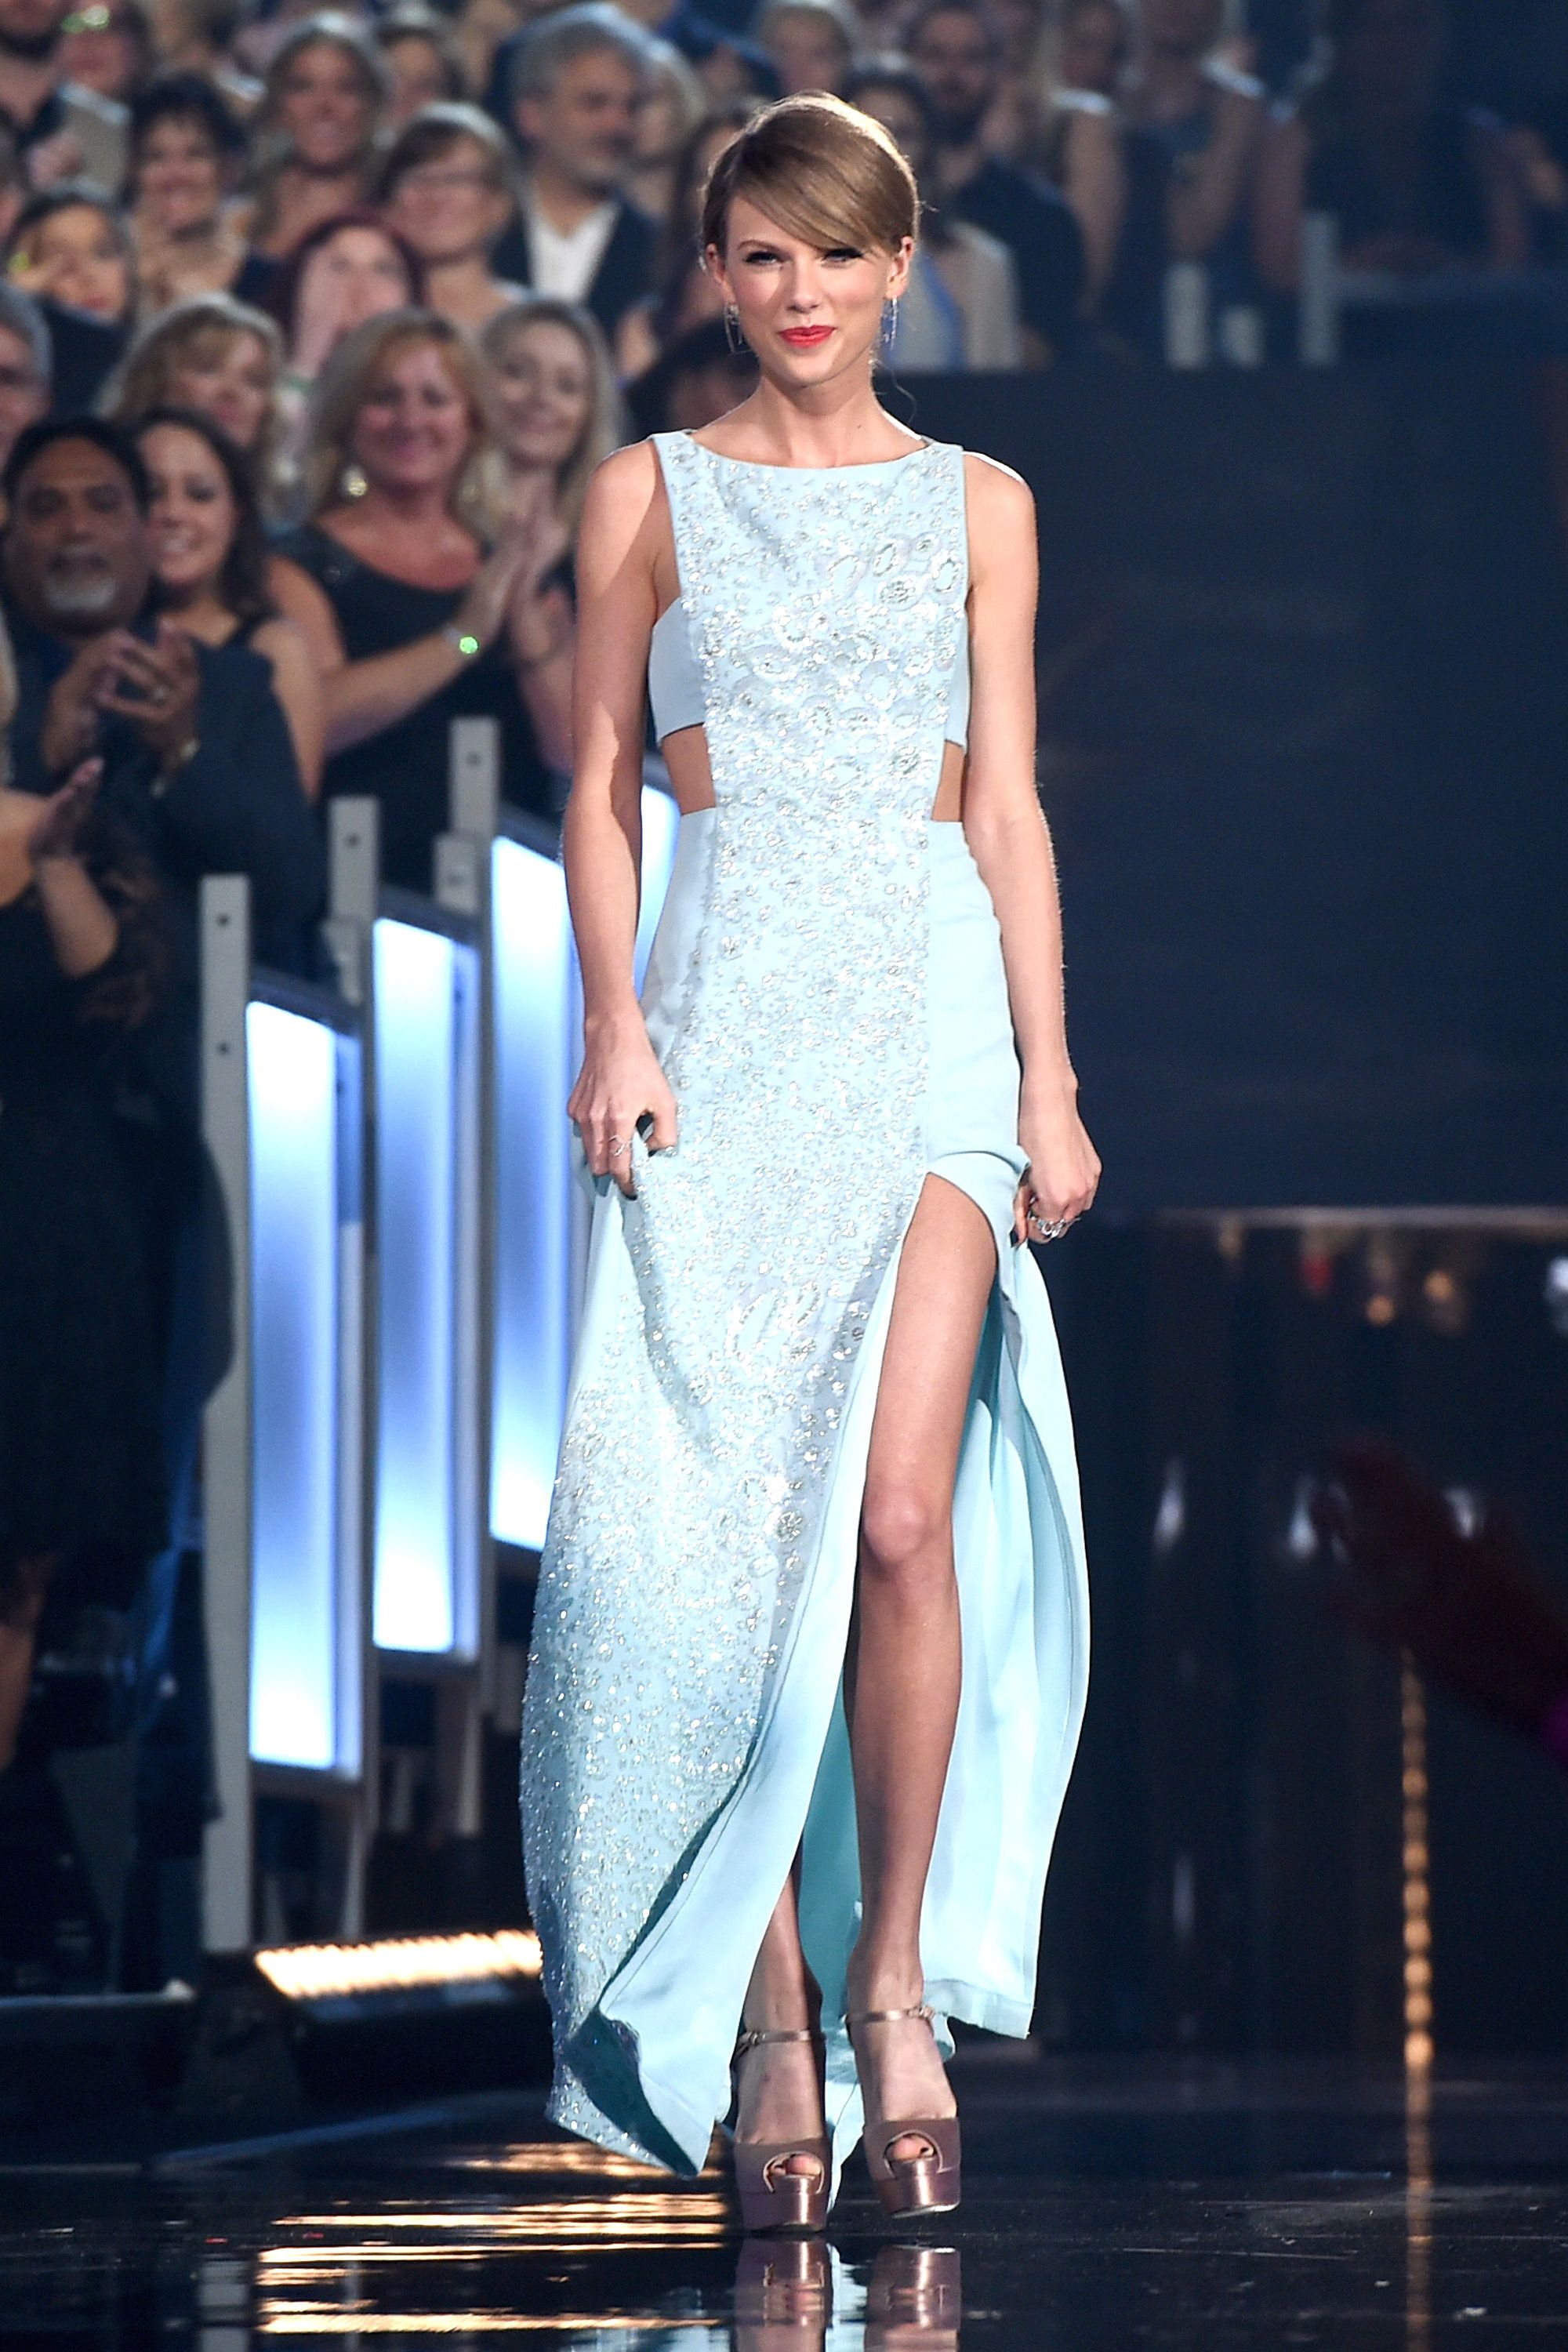 ARLINGTON, TX - APRIL 19:  Taylor Swift makes her way to the stage during the 50th Academy Of Country Music Awards at AT&T Stadium on April 19, 2015 in Arlington, Texas.  (Photo by Kevin Winter/ACM2015/Getty Images for dcp)